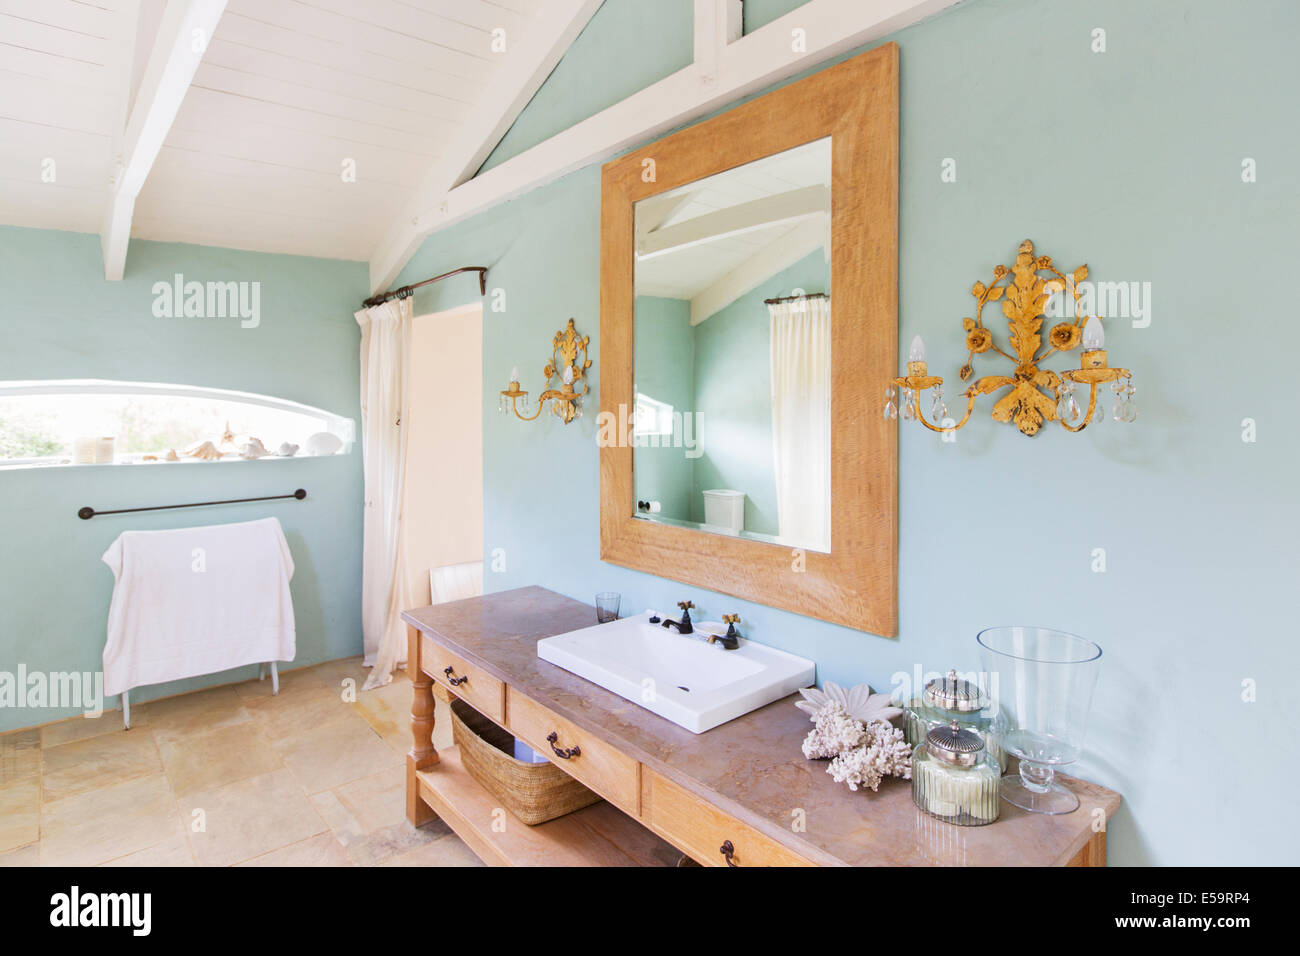 Animal Crossing New Leaf Badezimmer Dusche Stockfotos Dusche Bilder Alamy